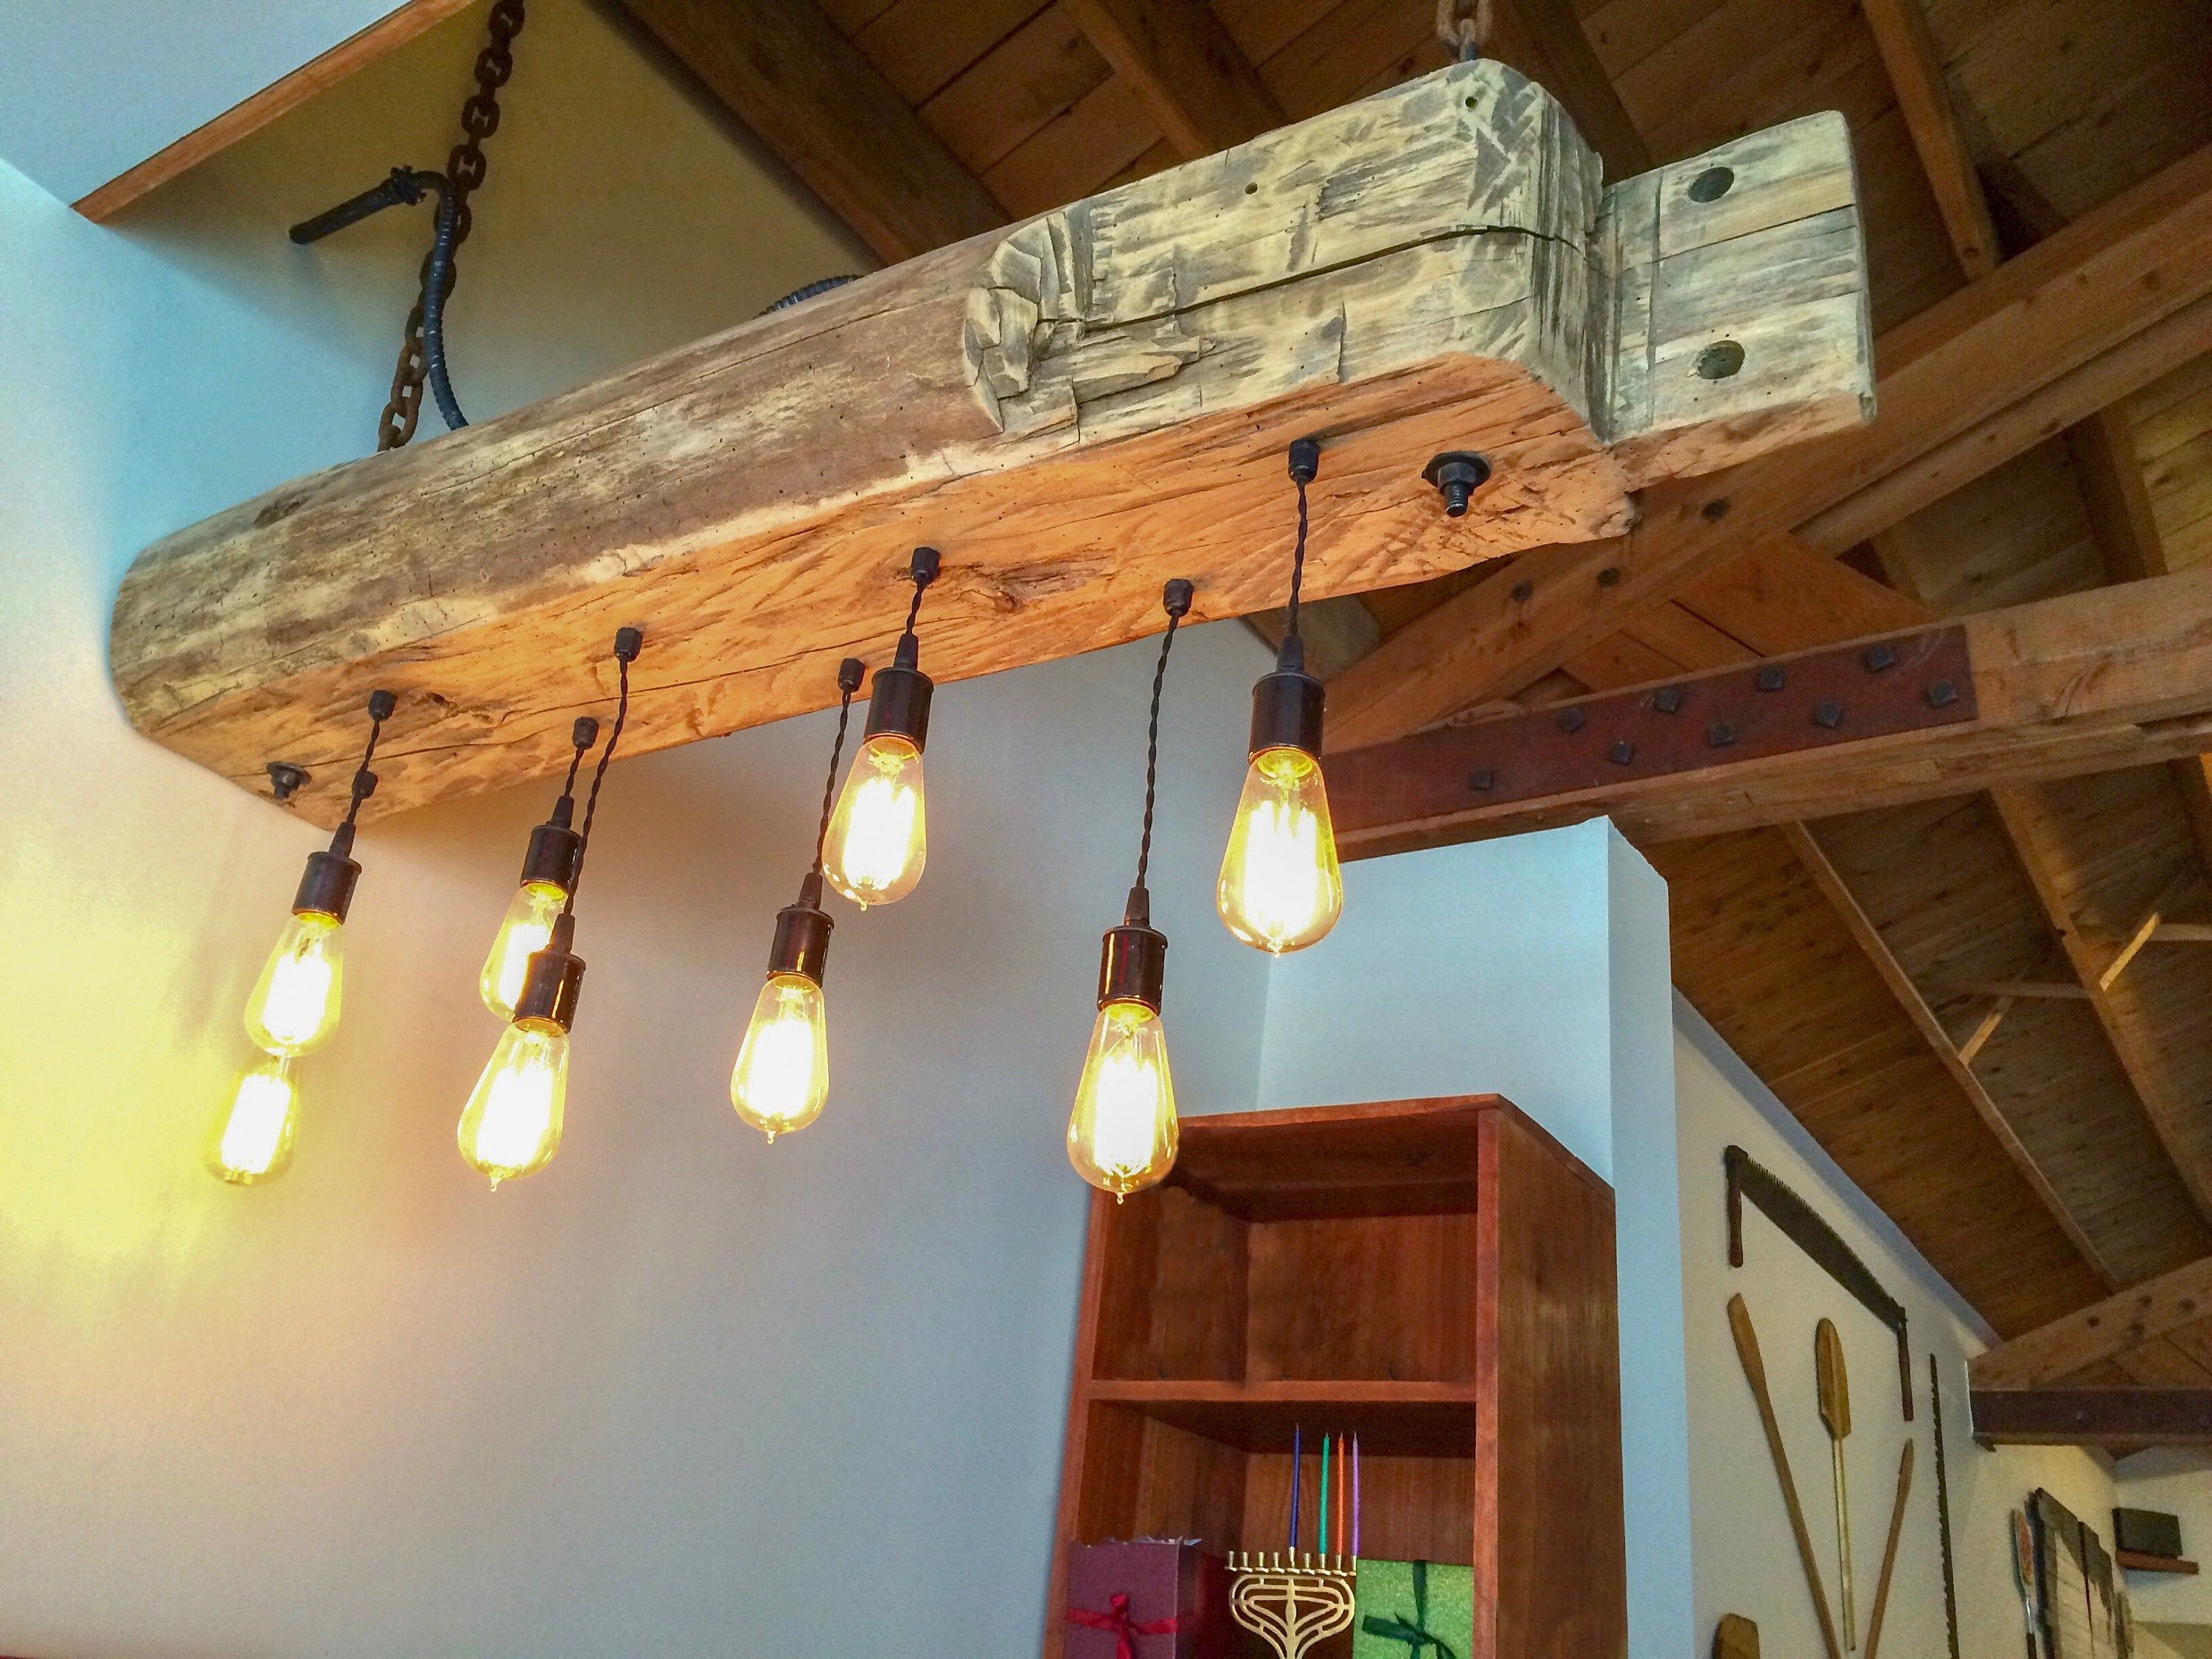 Pin On 7m Woodworking And Lighting By Paul Miller